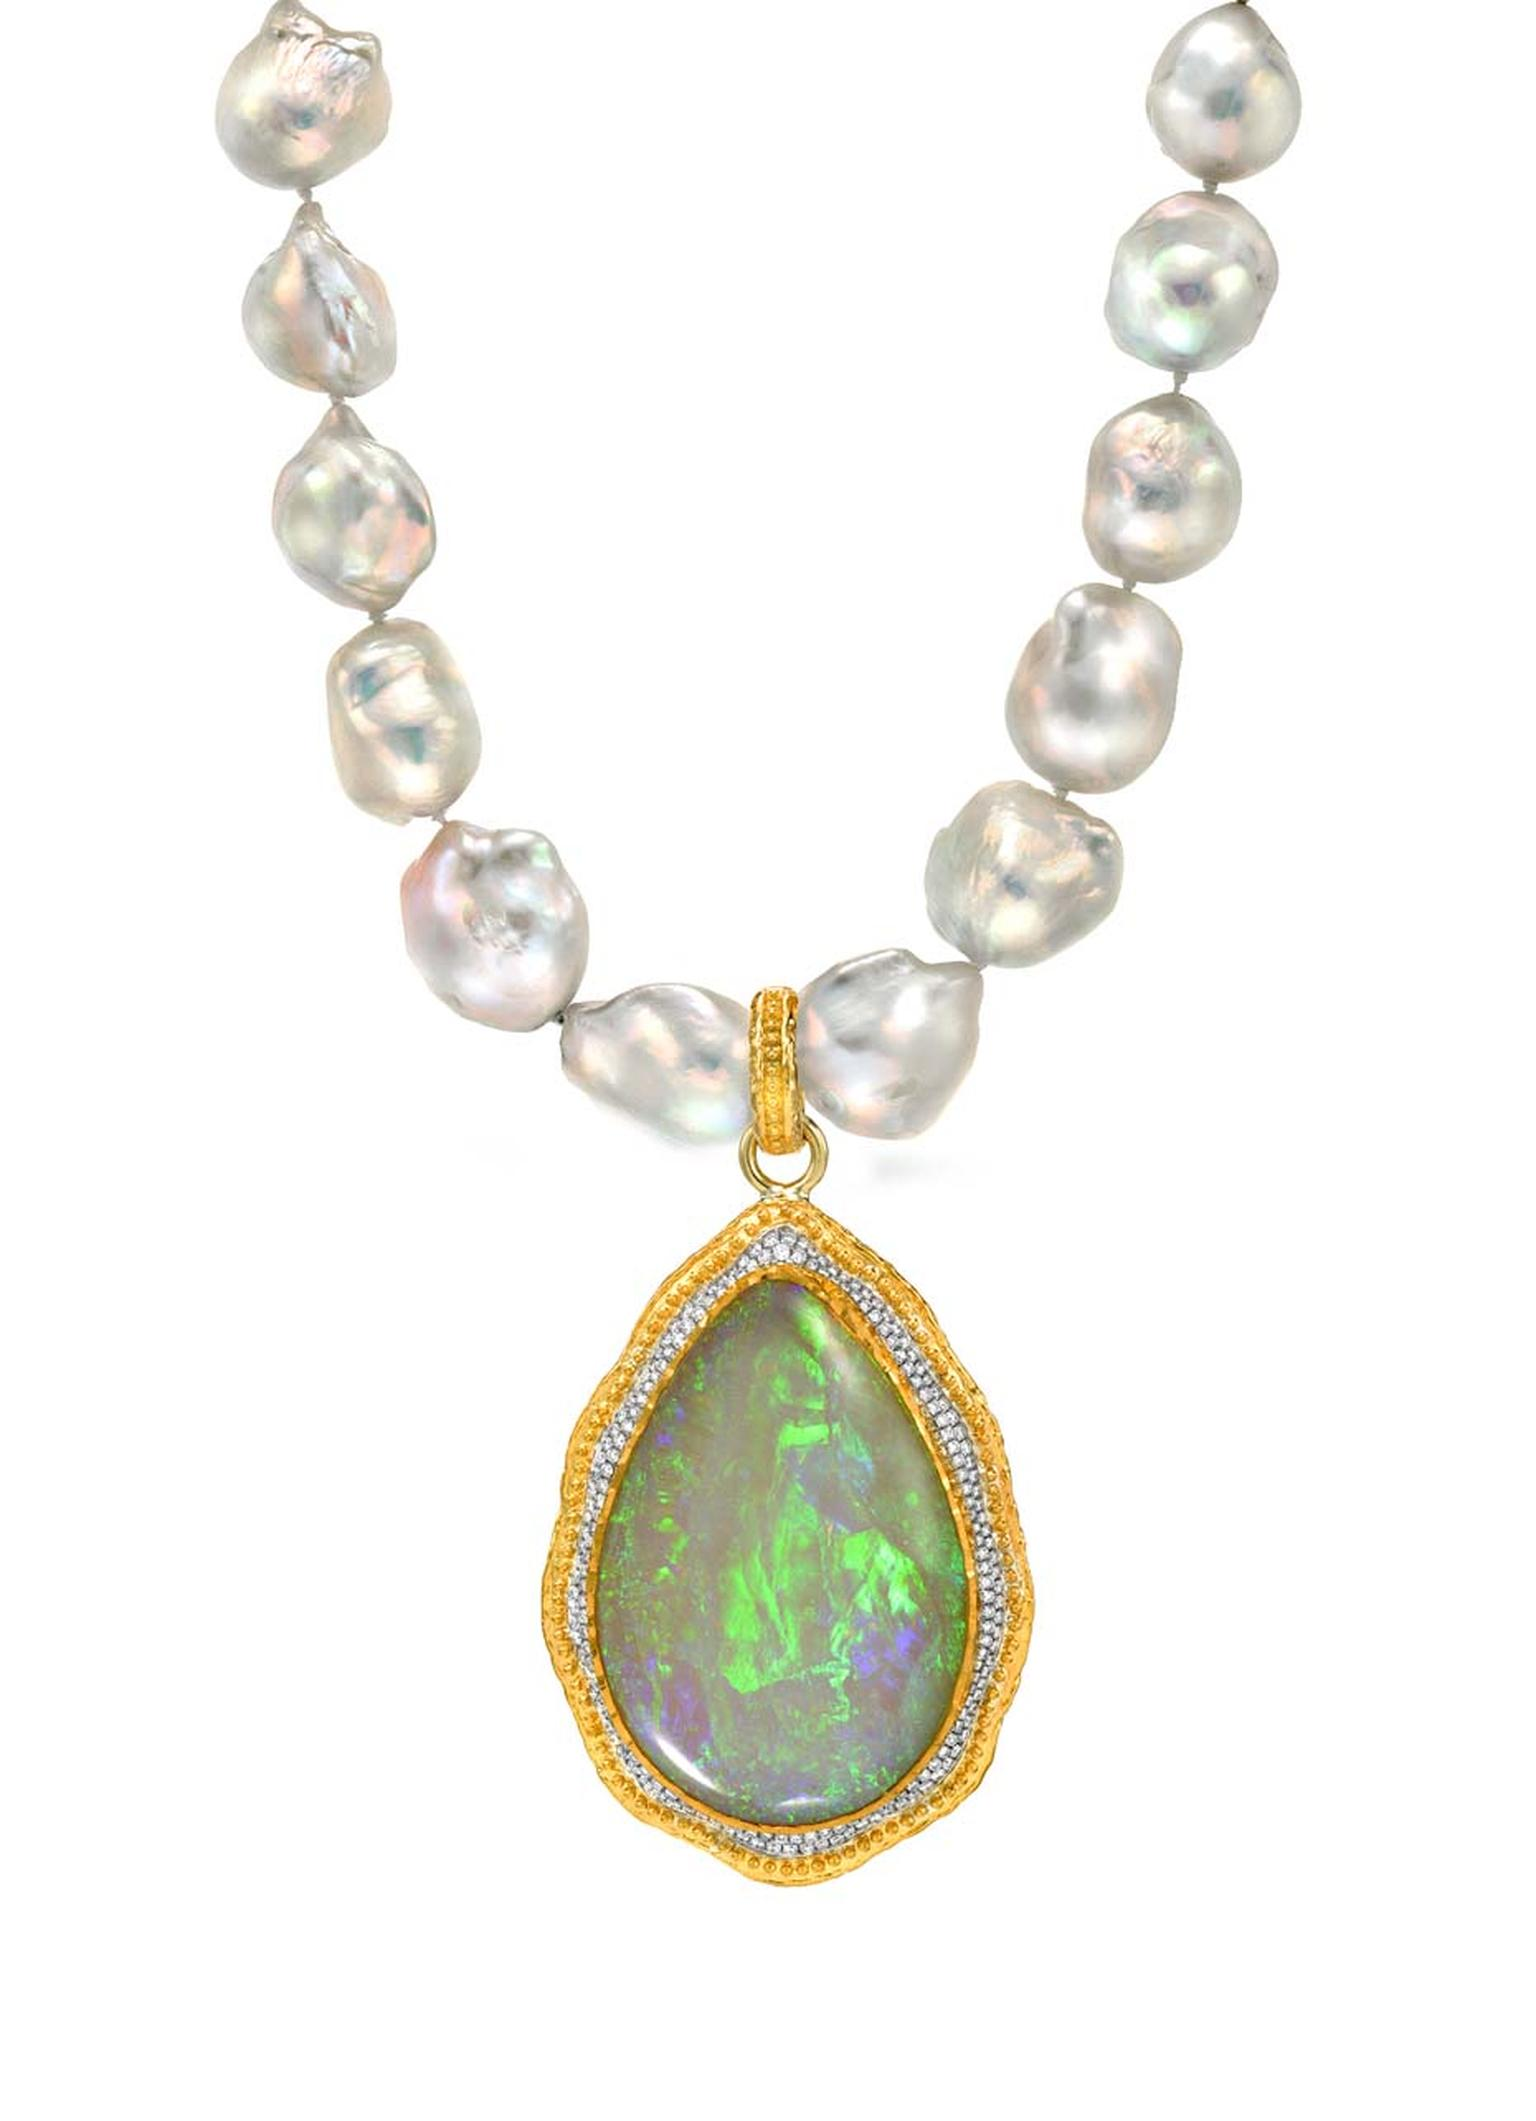 Victor Velyan gold and silver pendant with a central 36.55ct black opal surrounded by diamonds on a pearl necklace.